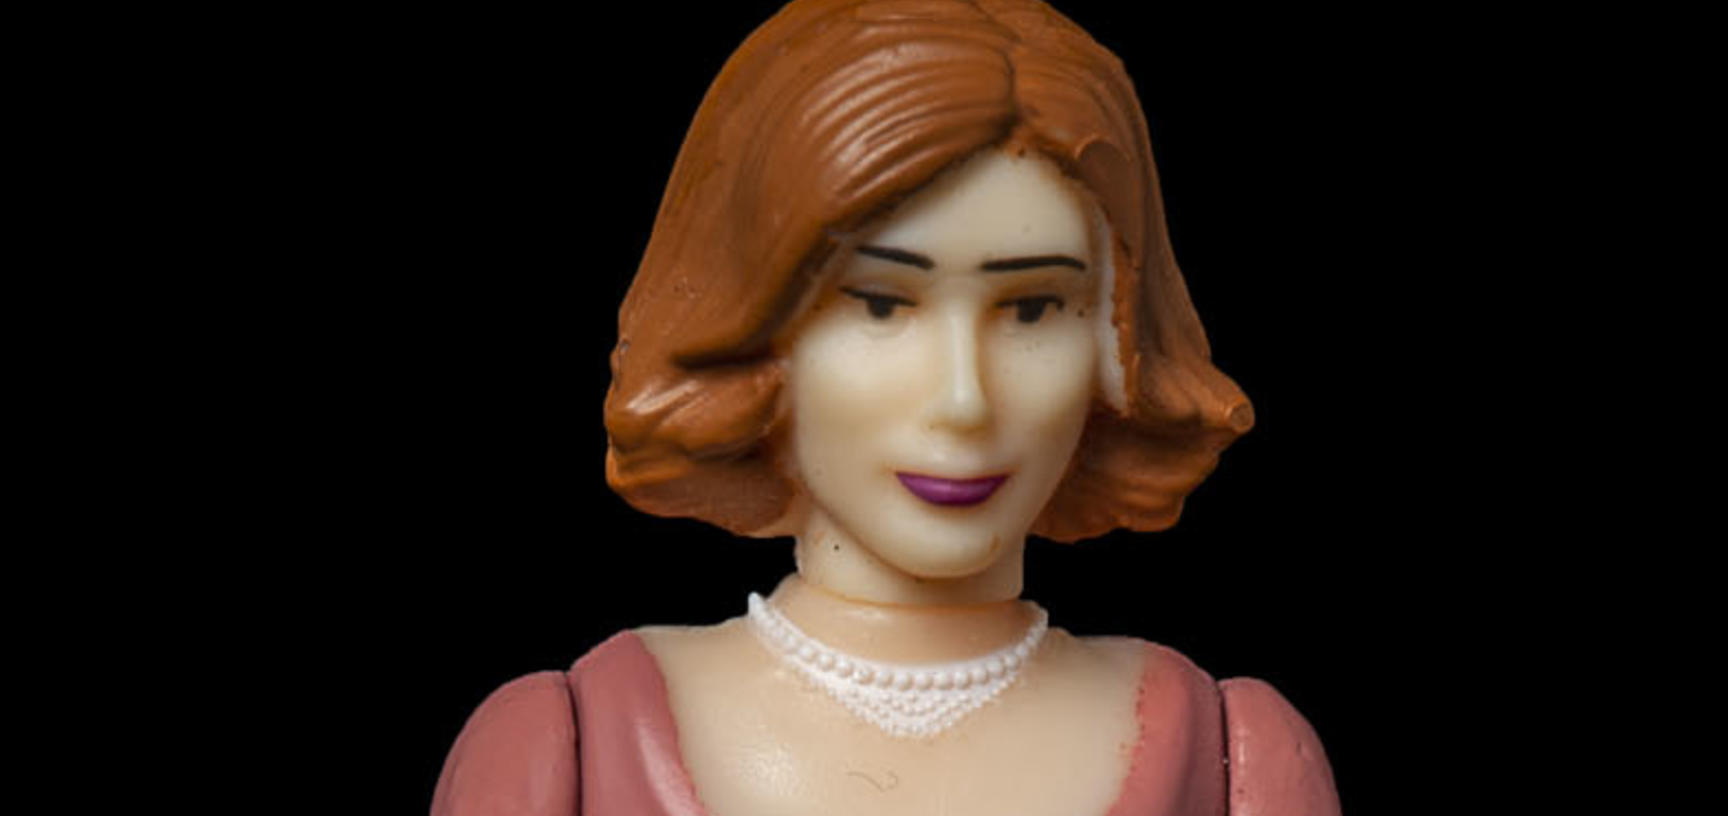 Plastic model of a woman with auburn hair, dark trousers and pink jumper.